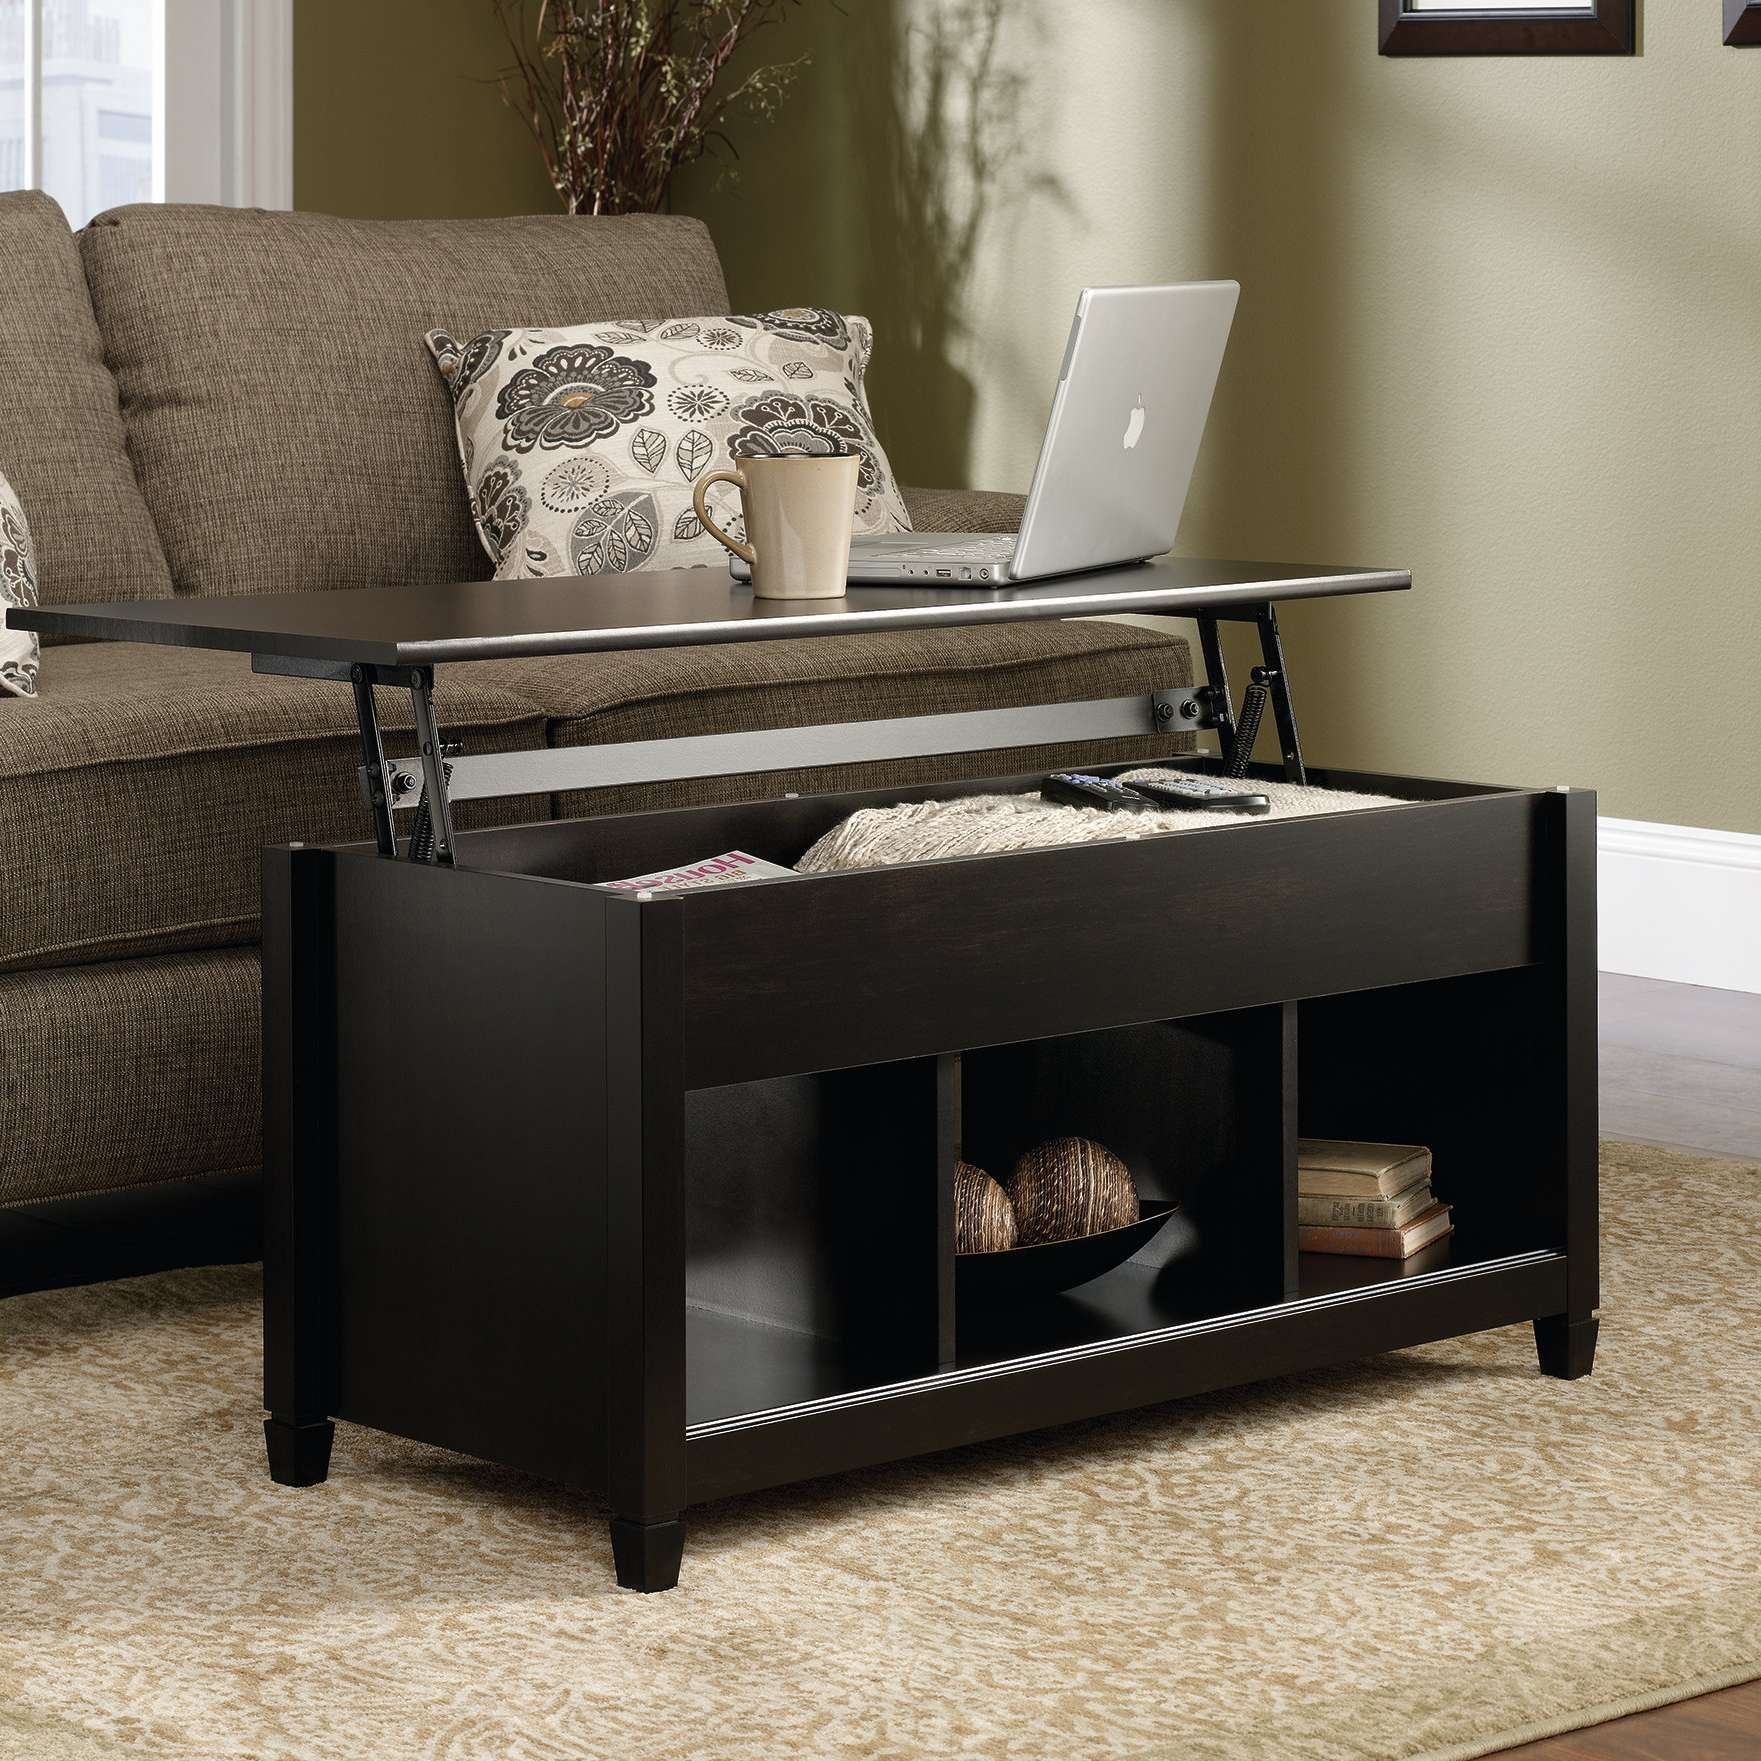 Most Up To Date Coffee Tables With Lift Up Top Within Lift Top Coffee Tables You'll Love (View 16 of 20)